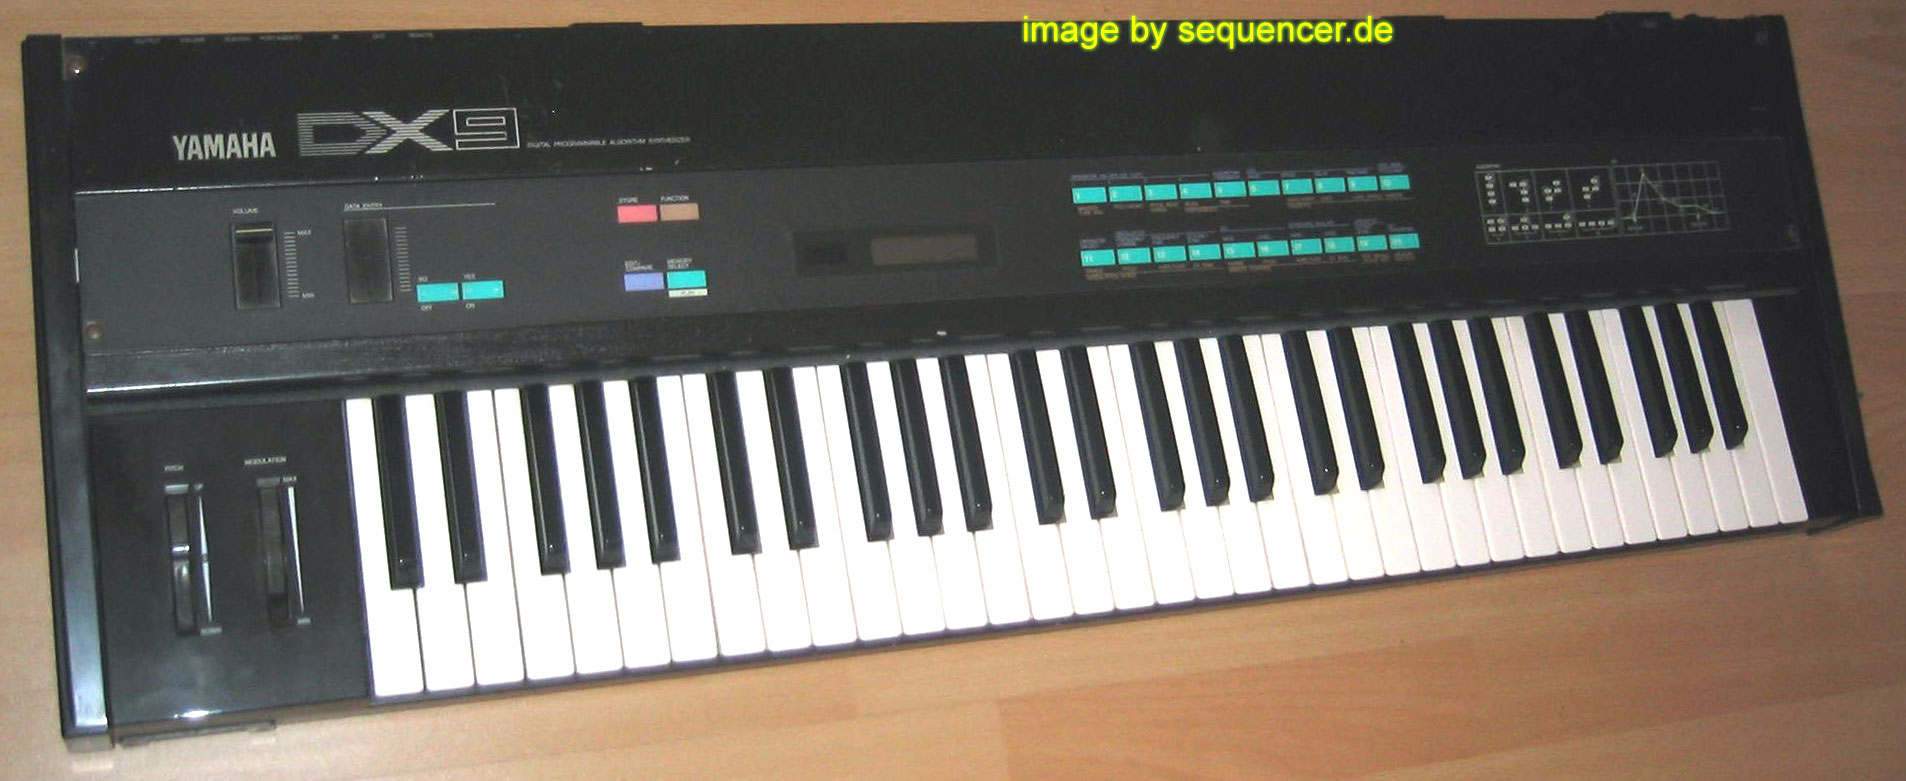 Yamaha DX9 synthesizer